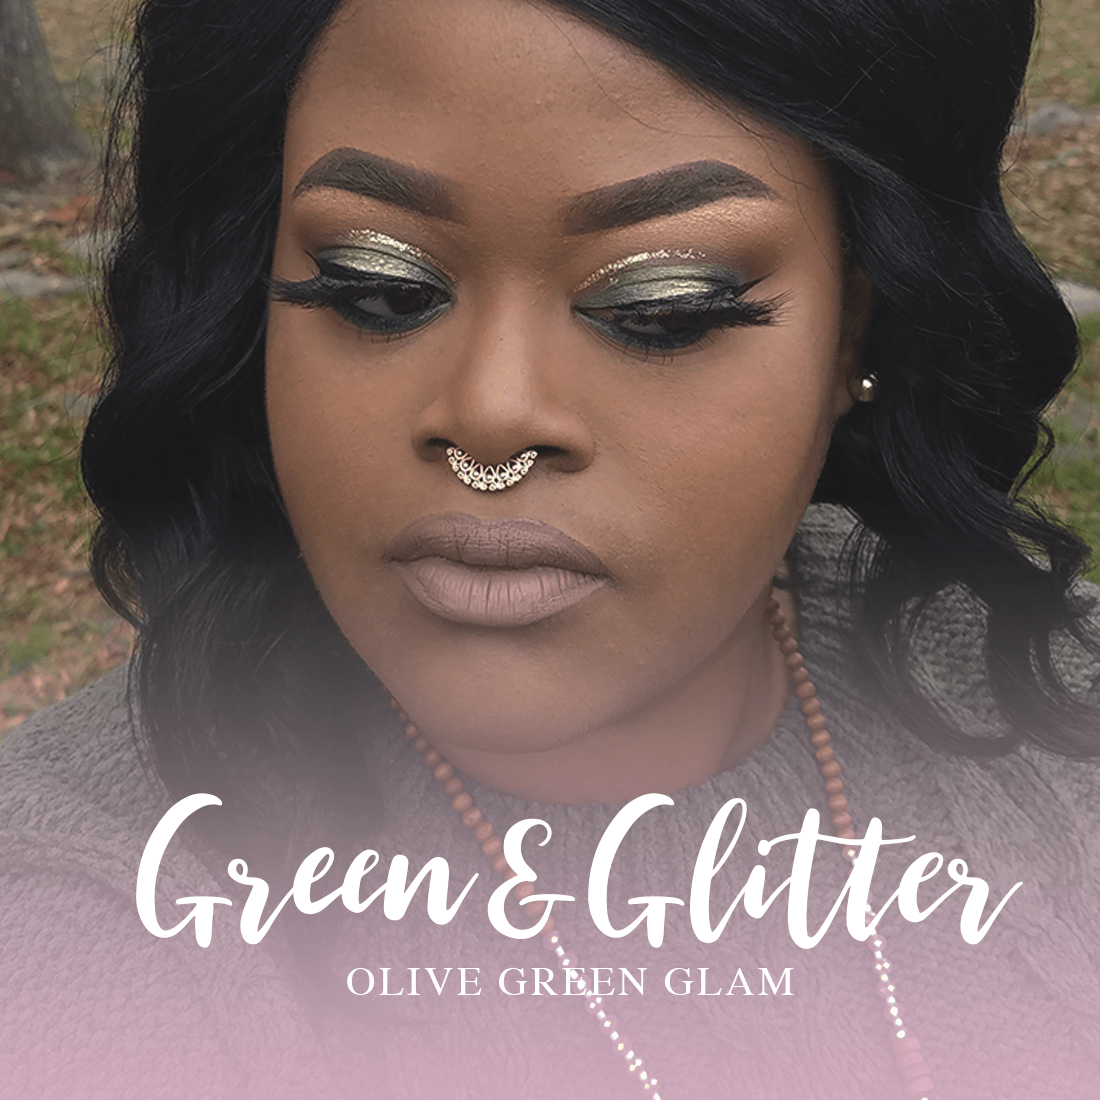 Olive Green & Gold Glitter Glam